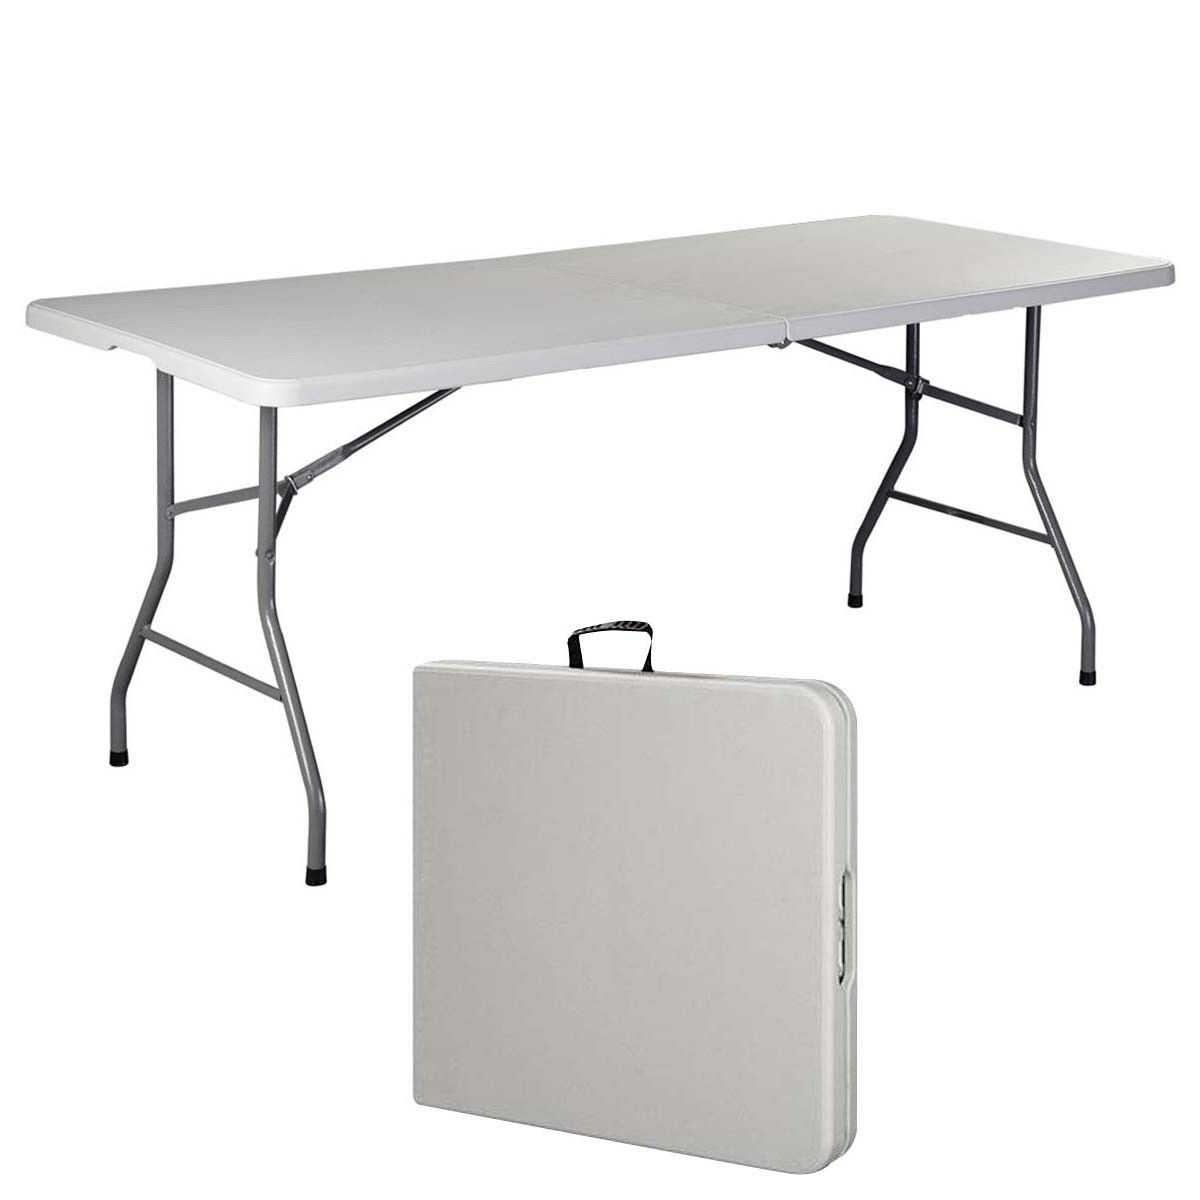 6' Folding Table Portable Plastic Indoor Outdoor Picnic ...